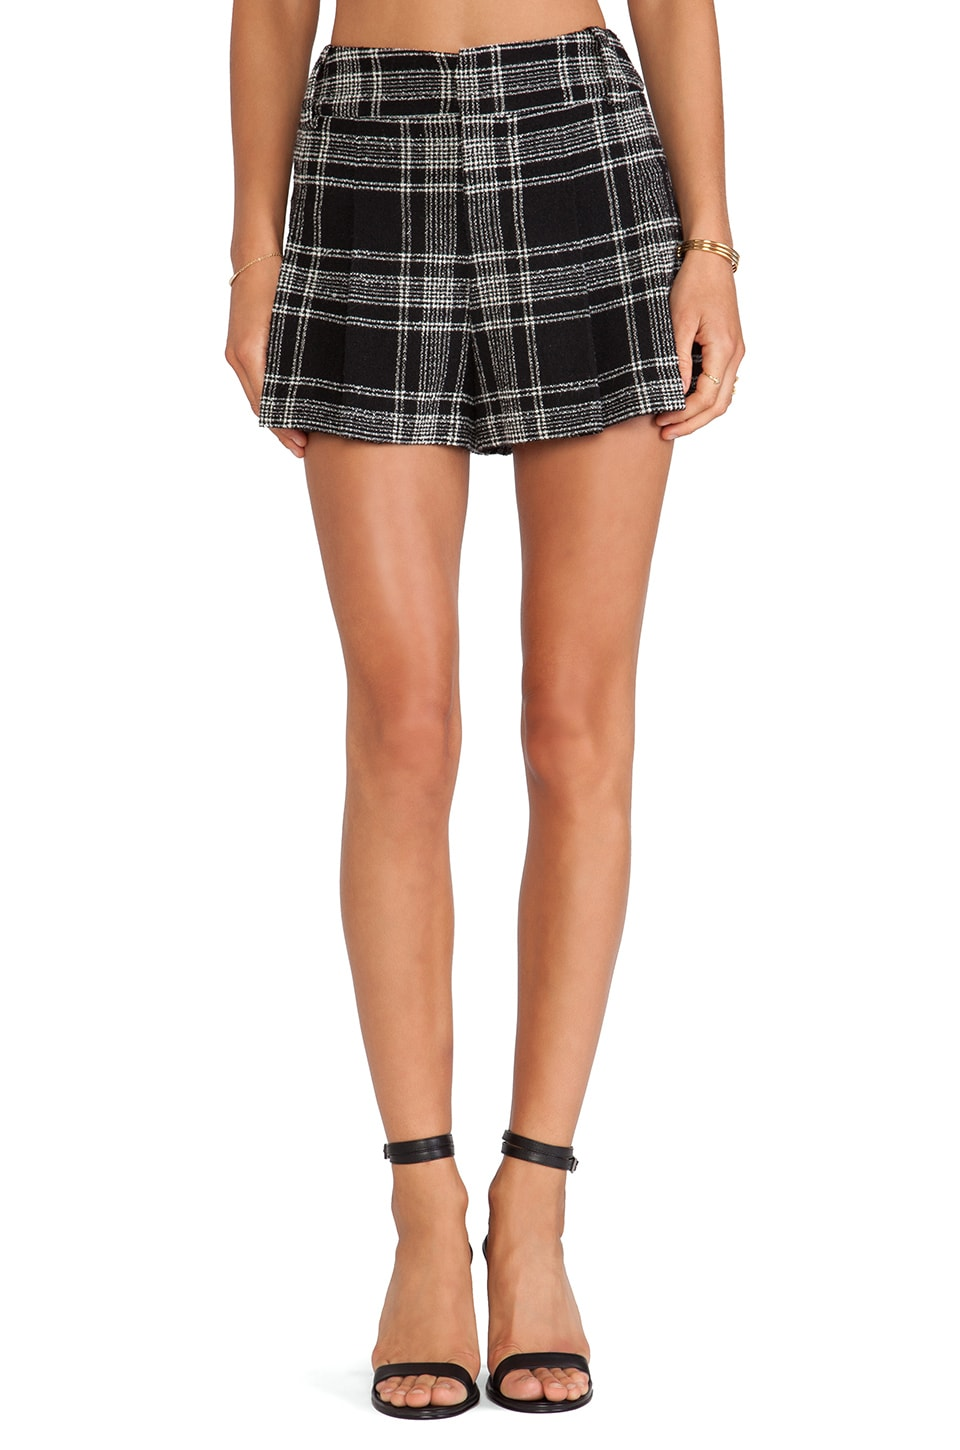 Alice + Olivia High Waist Short in Black & White